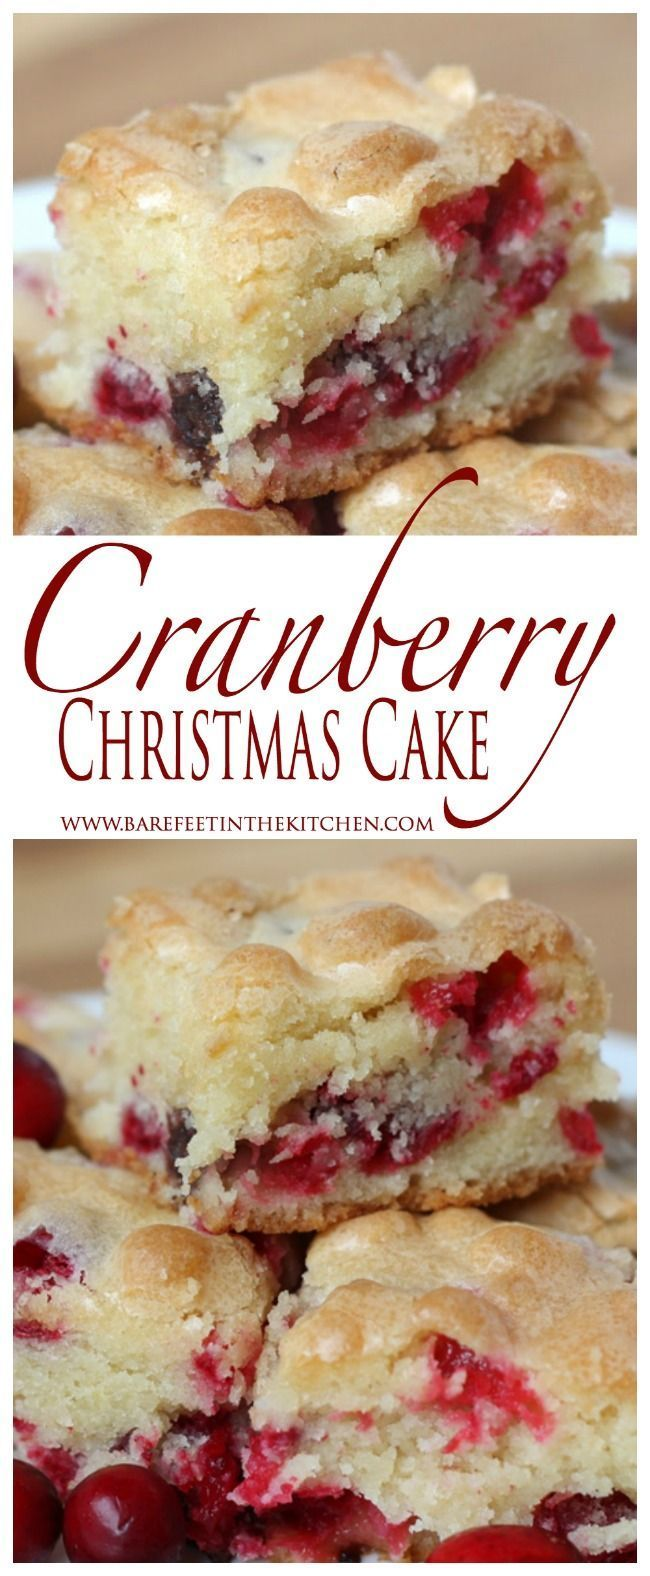 Cranberry Christmas Cake is the ULTIMATE holiday dessert! Get the recipe at barefeetinthekitc...